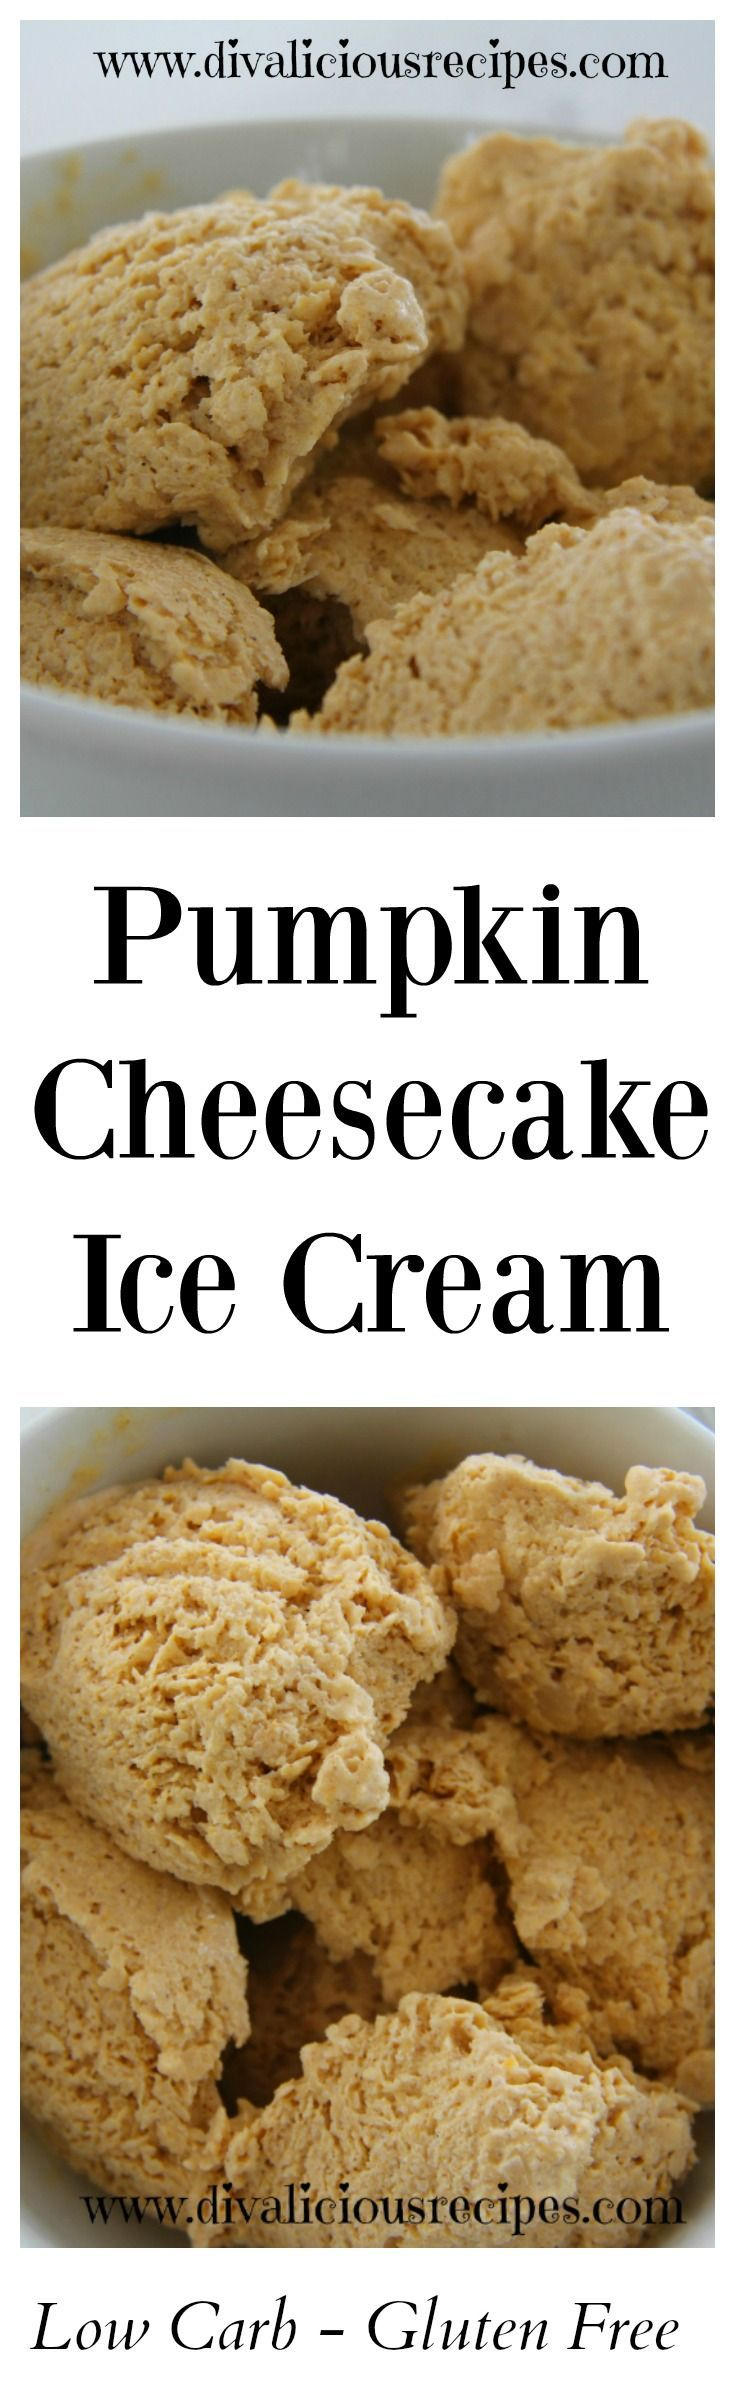 Pumpkin cheesecake ice cream makes a delicious low carb dessert.